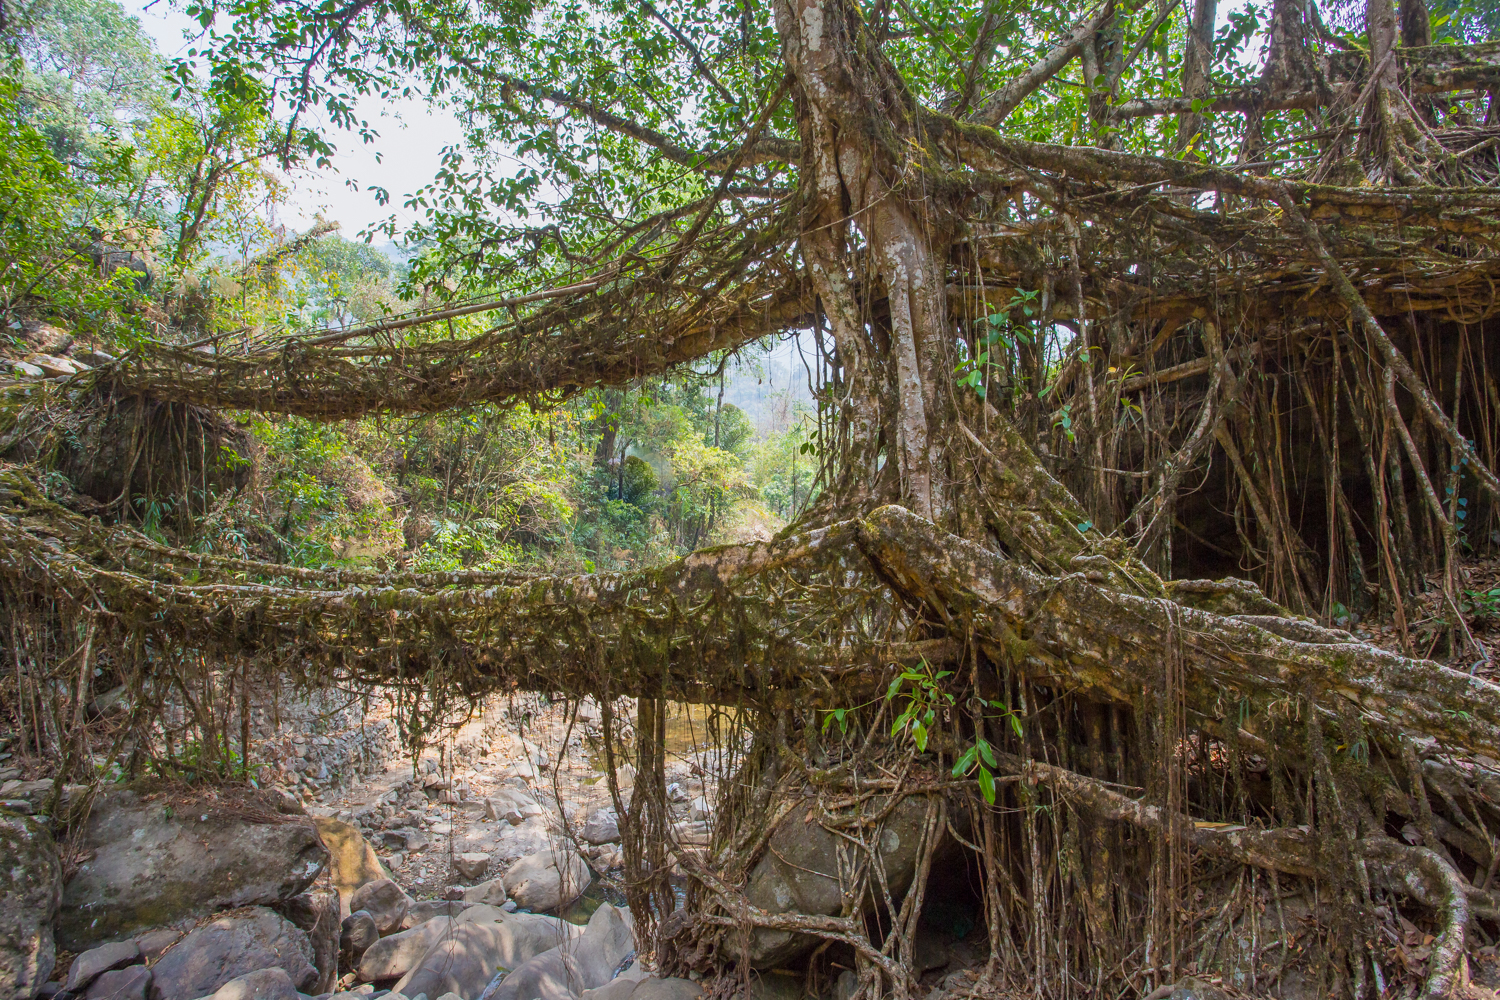 Living Bridges, made from fig roots, India, trees